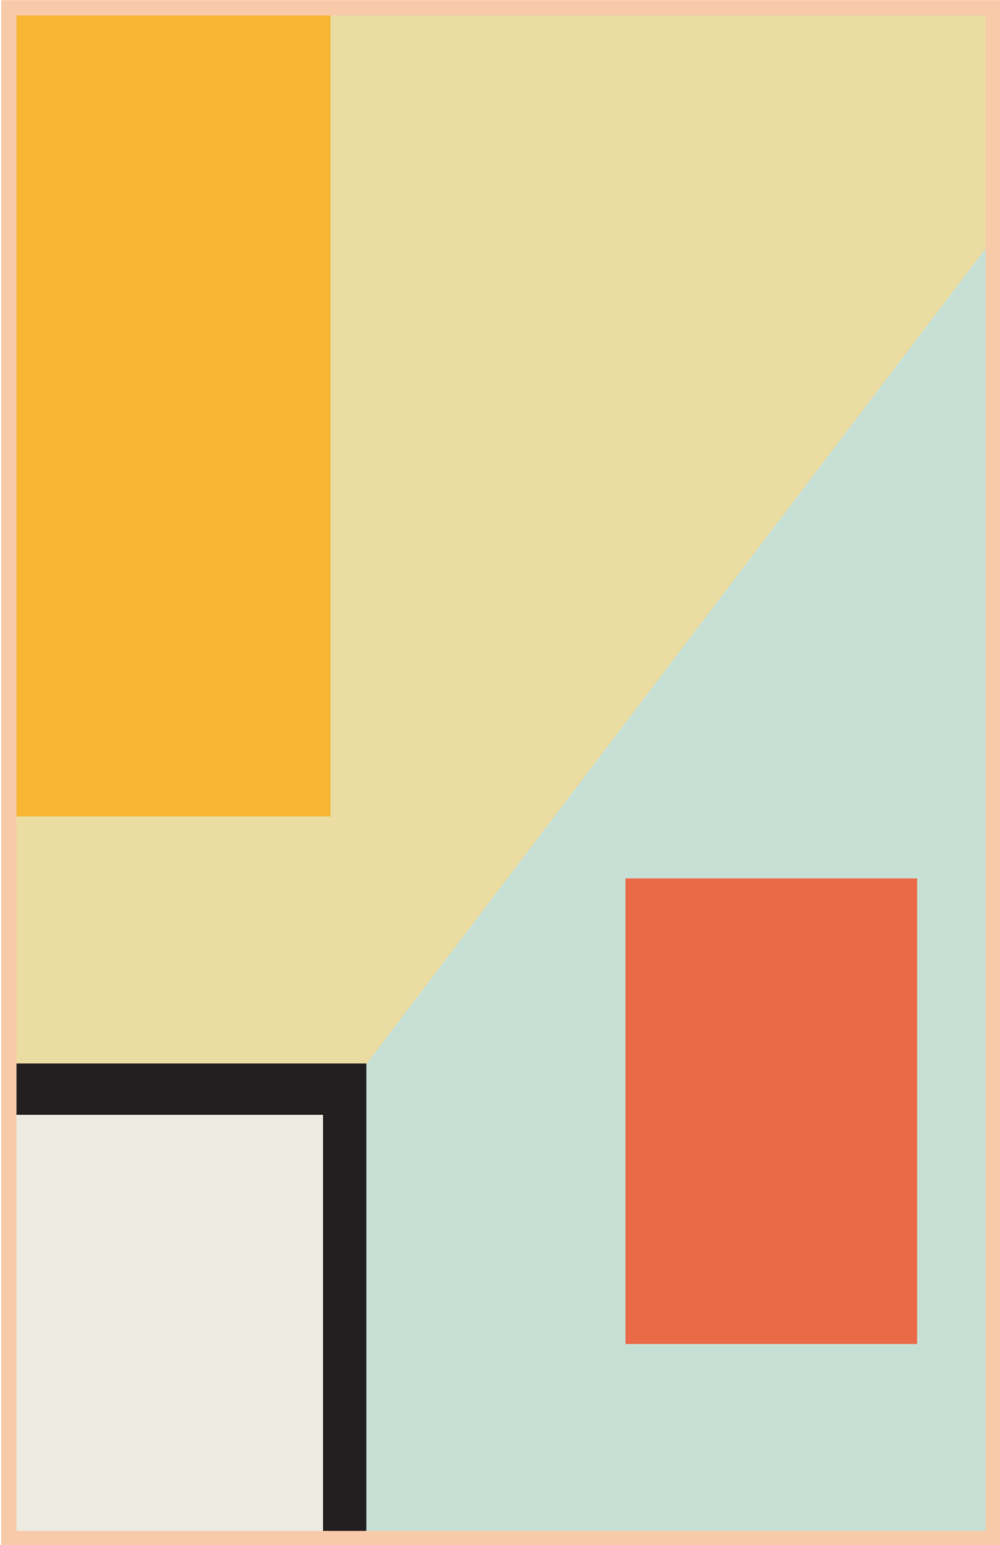 Poster Experiments-14.png